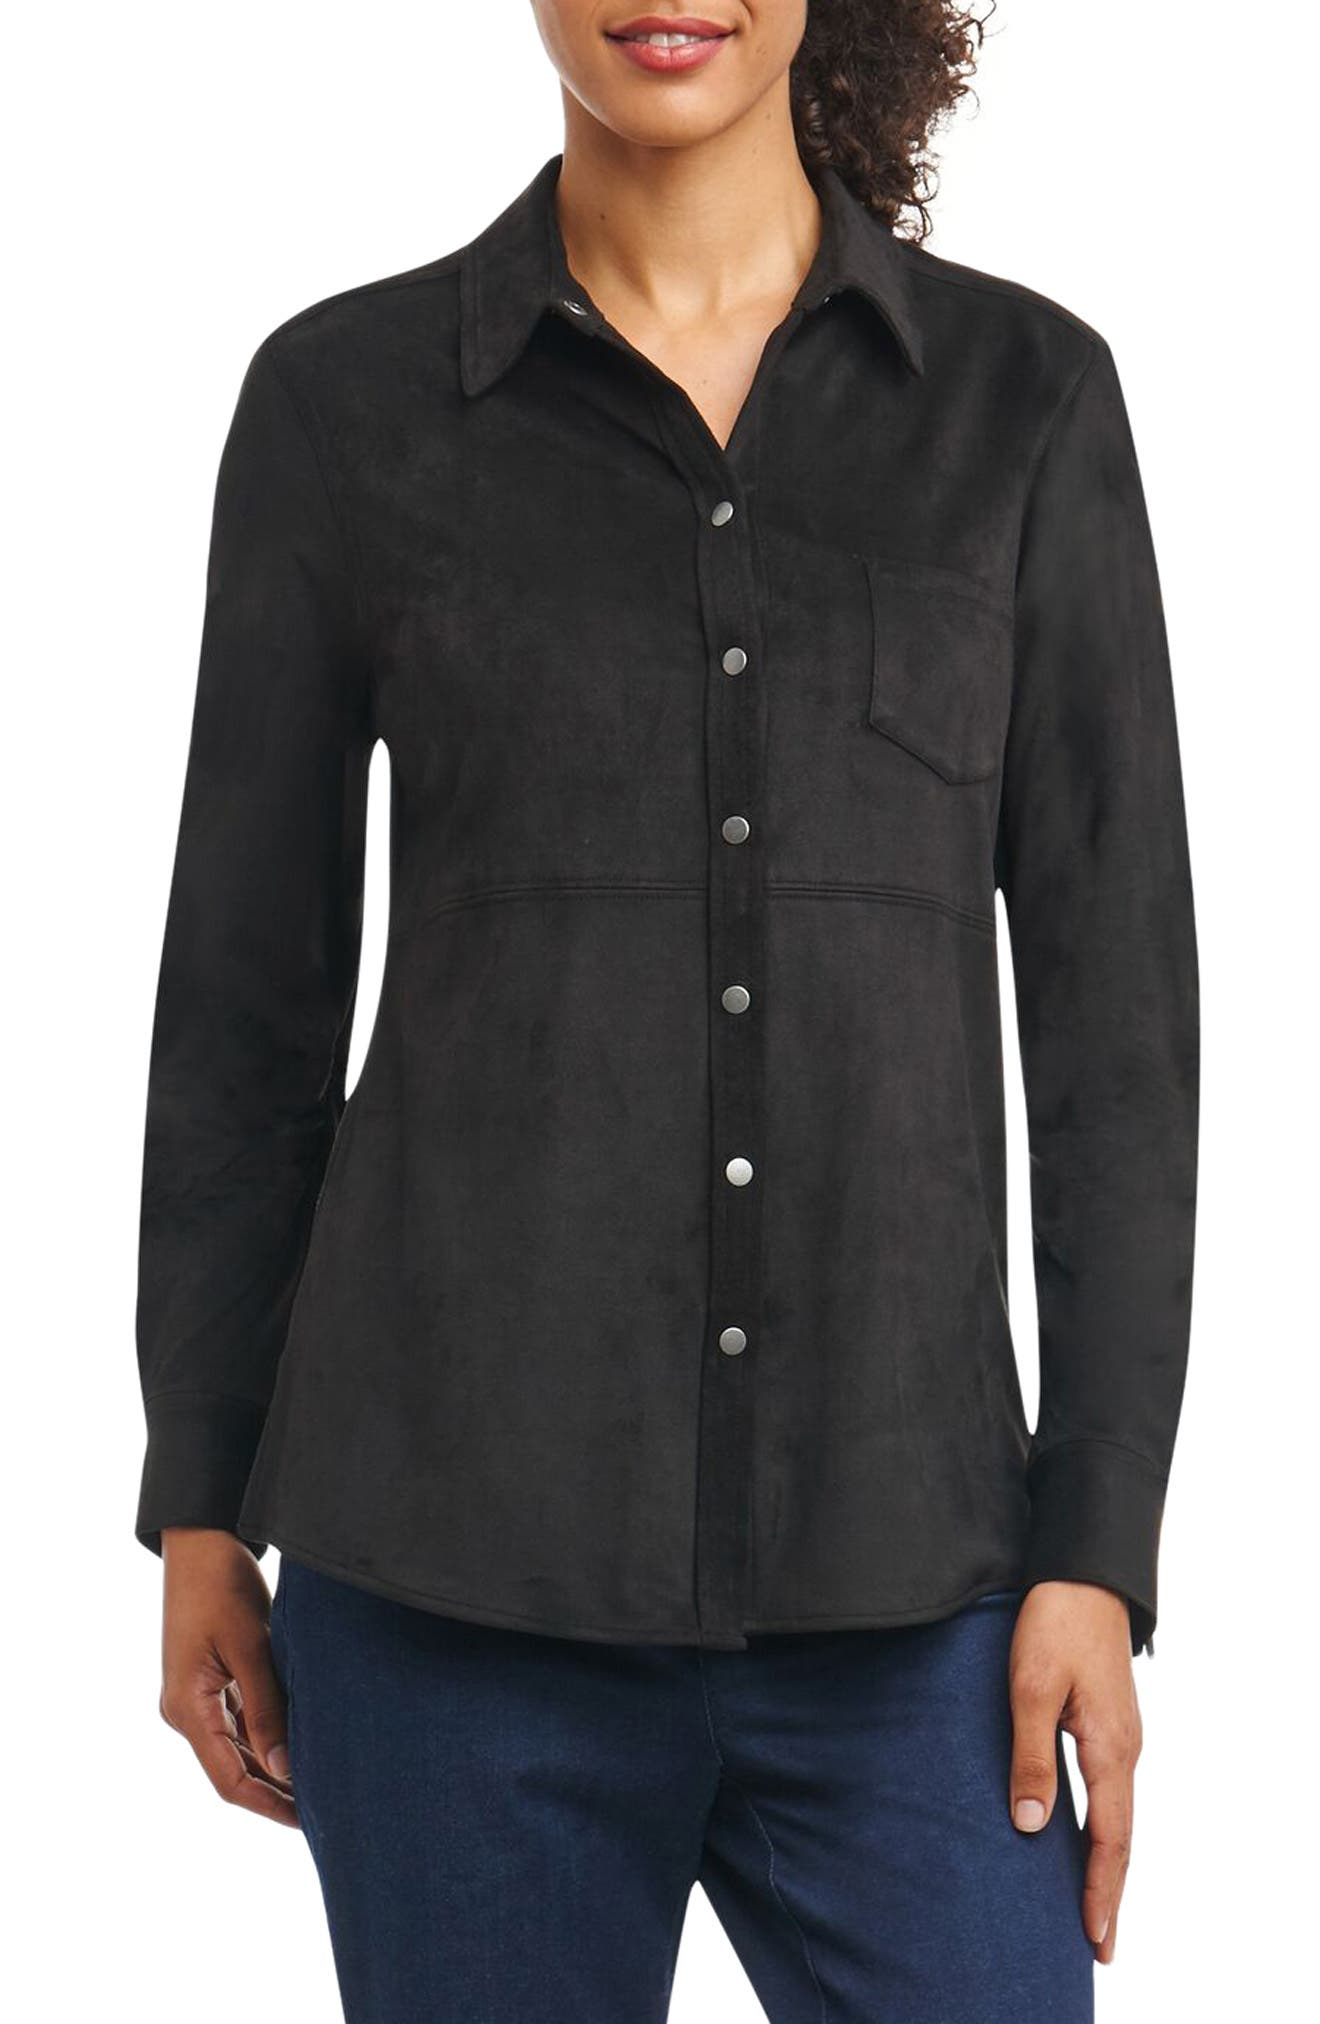 Jena Faux Suede Shirt,                             Main thumbnail 1, color,                             001